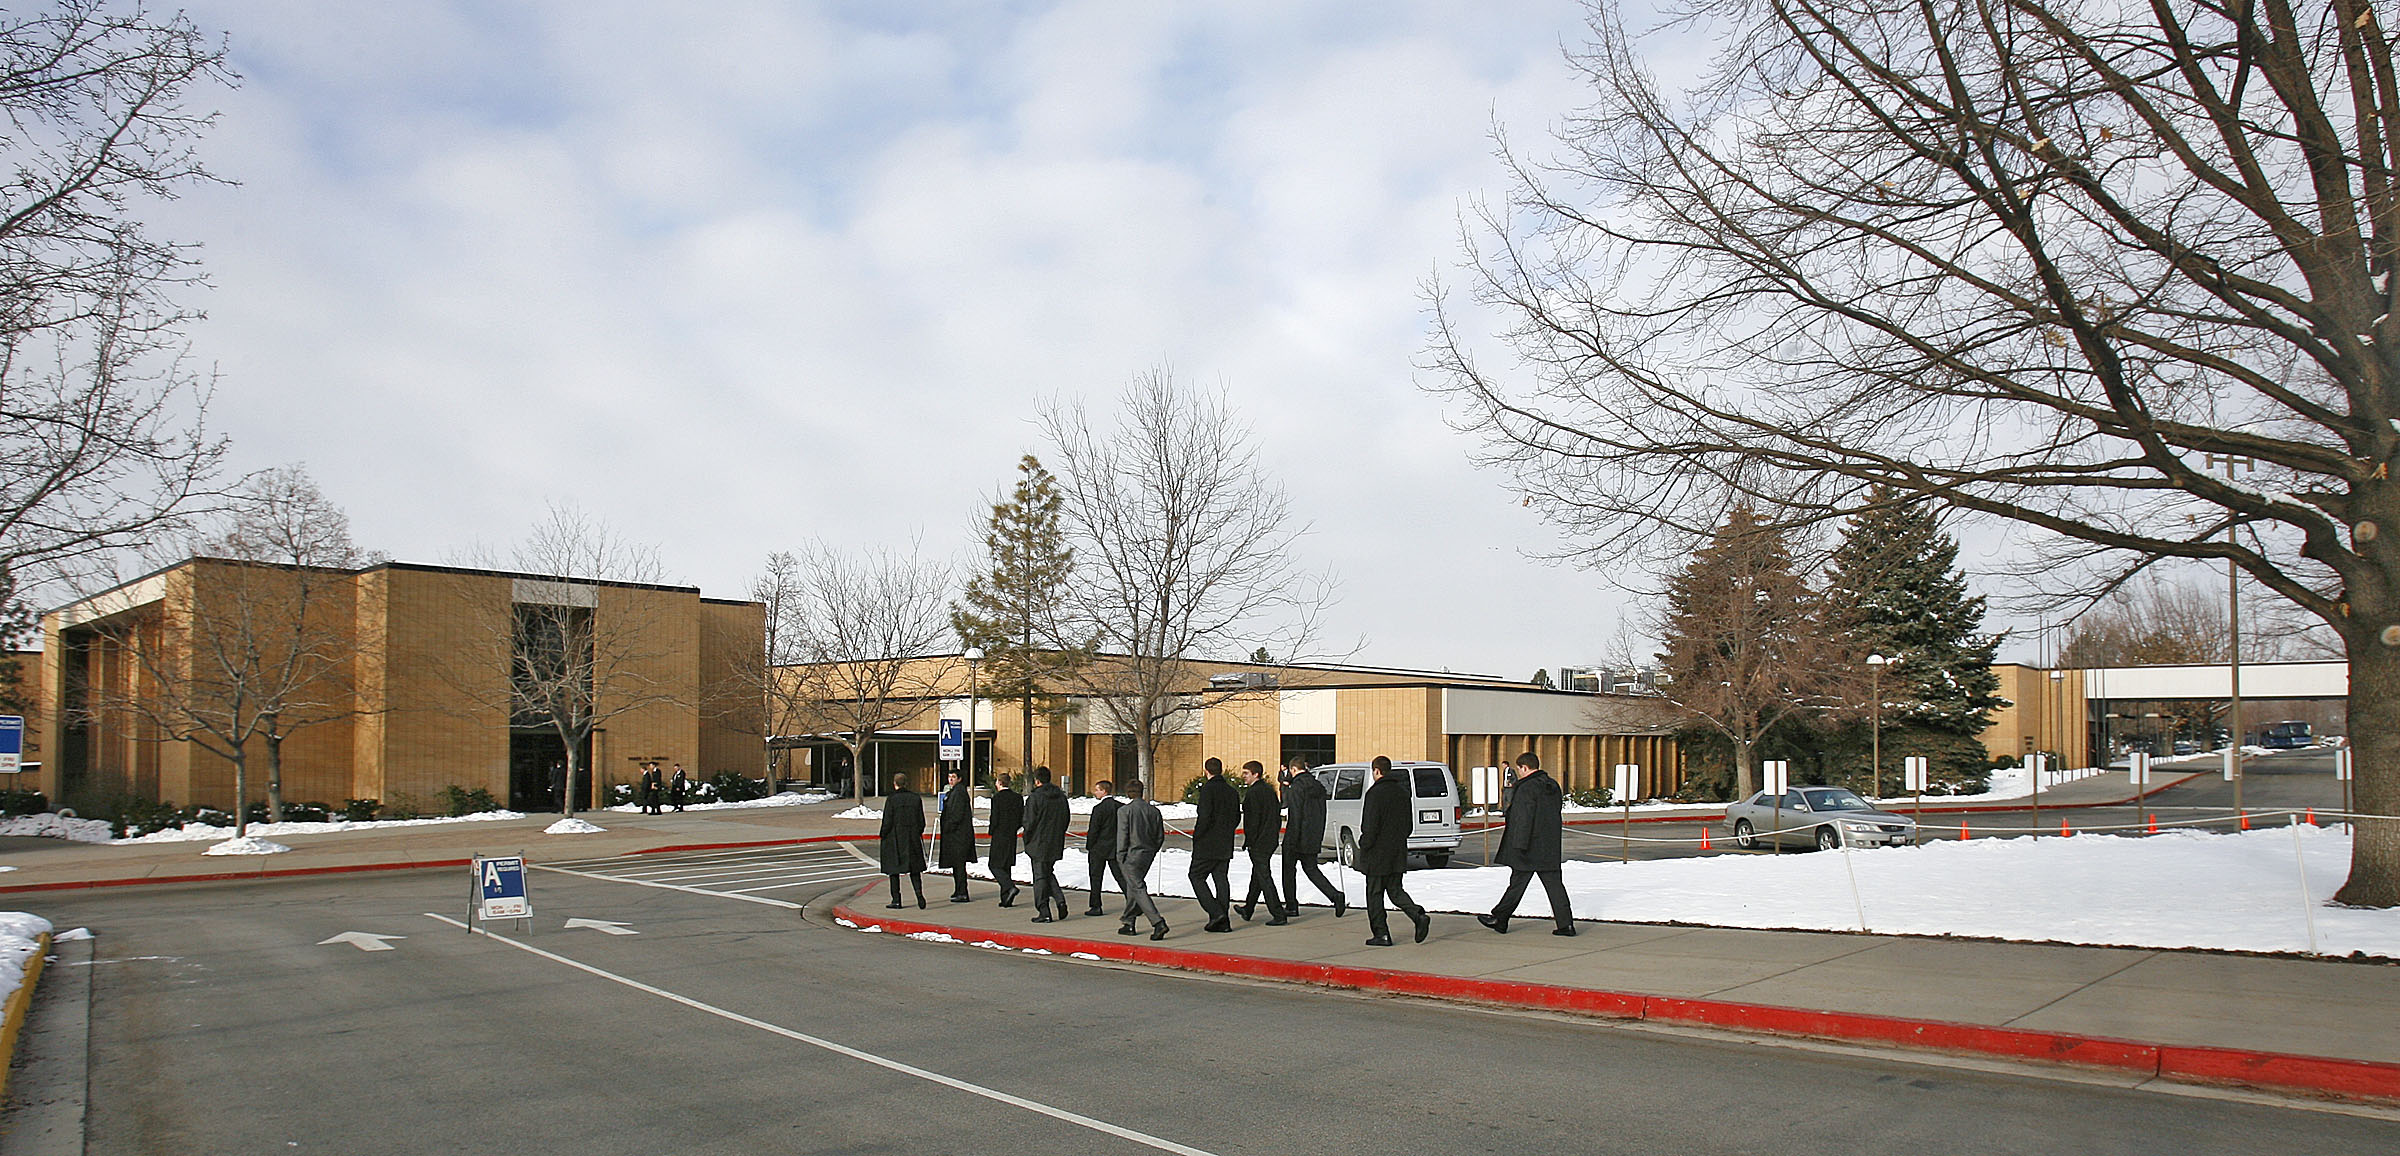 The Heber C. Kimball Building, left, one of the five oldest training buildings at the Provo Missionary Training Center, is seen in this Jan. 14, 2008, photograph. The Wilford Woodruff Administration Building is on the right.